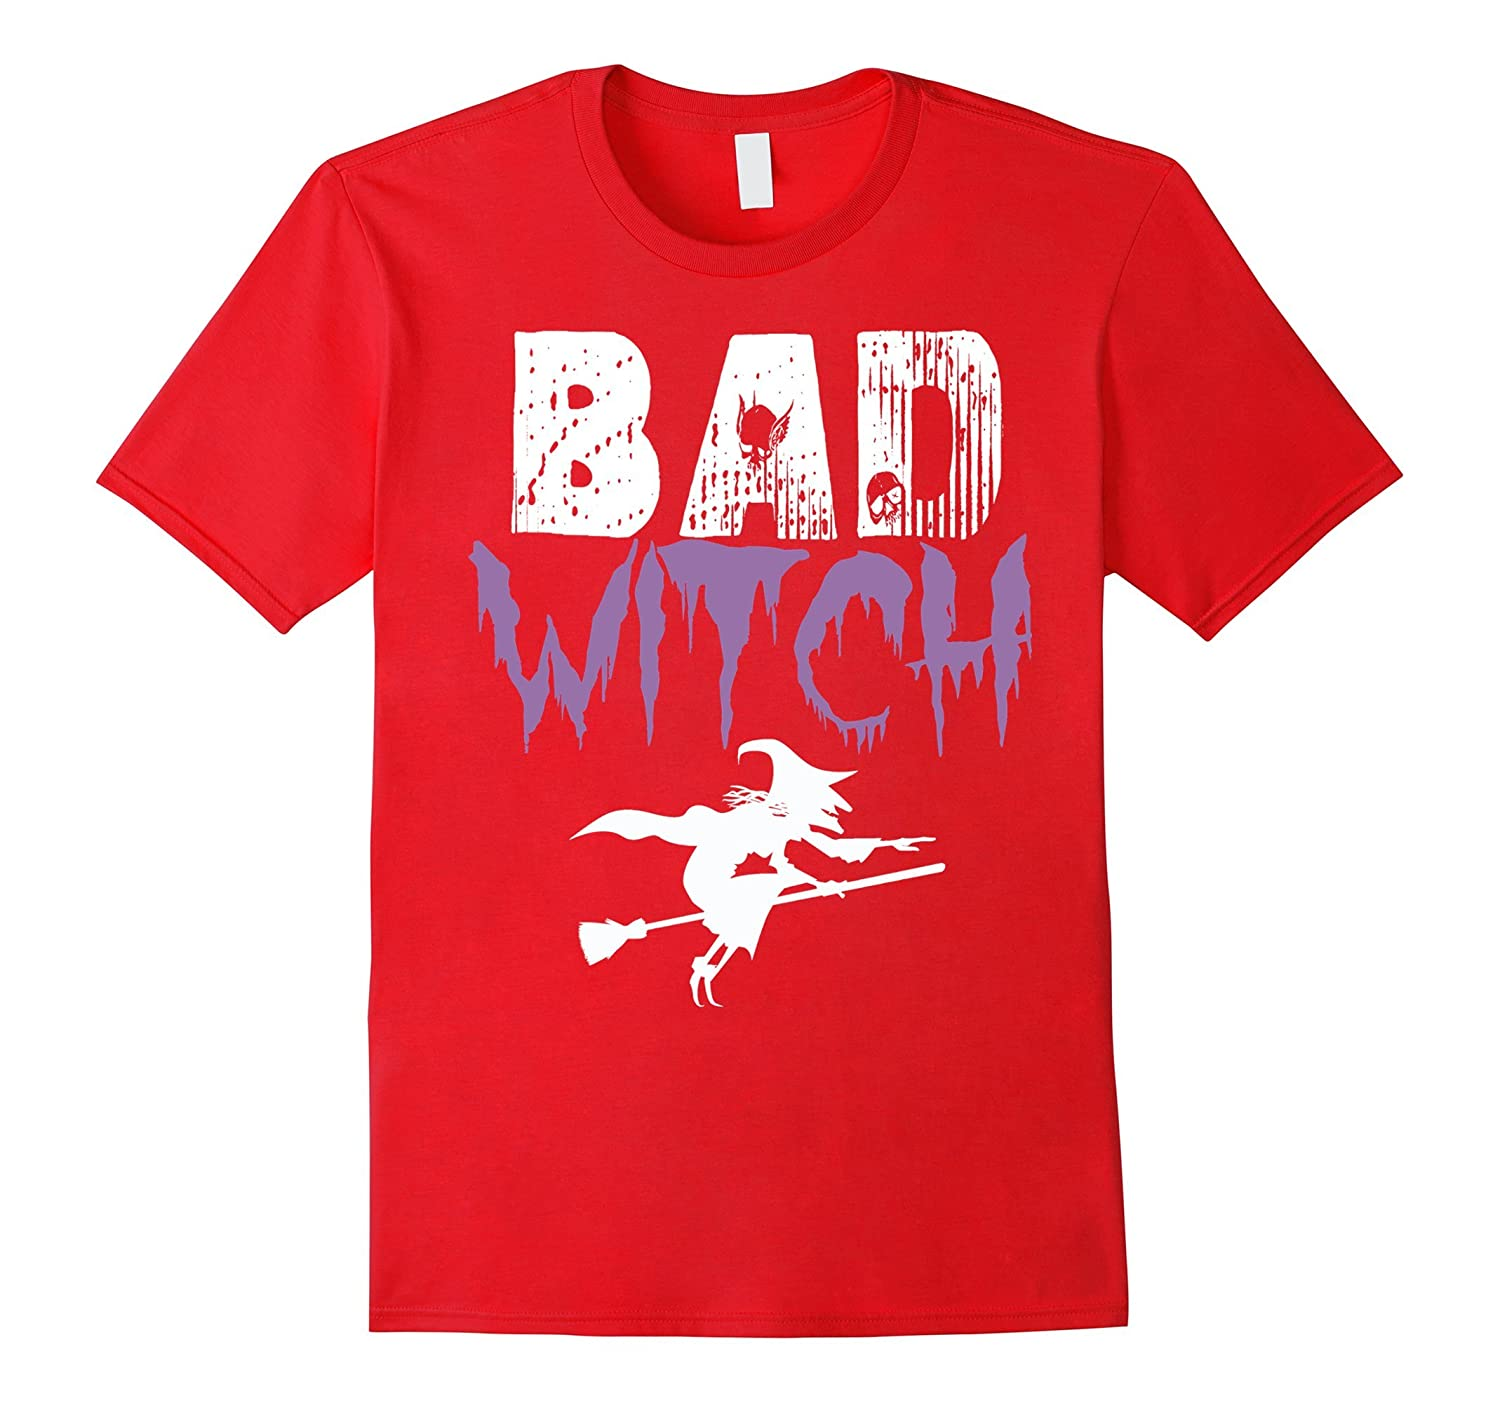 Bad Witch Shirt Funny Halloween Womens Gift Idea T-Shirt-FL